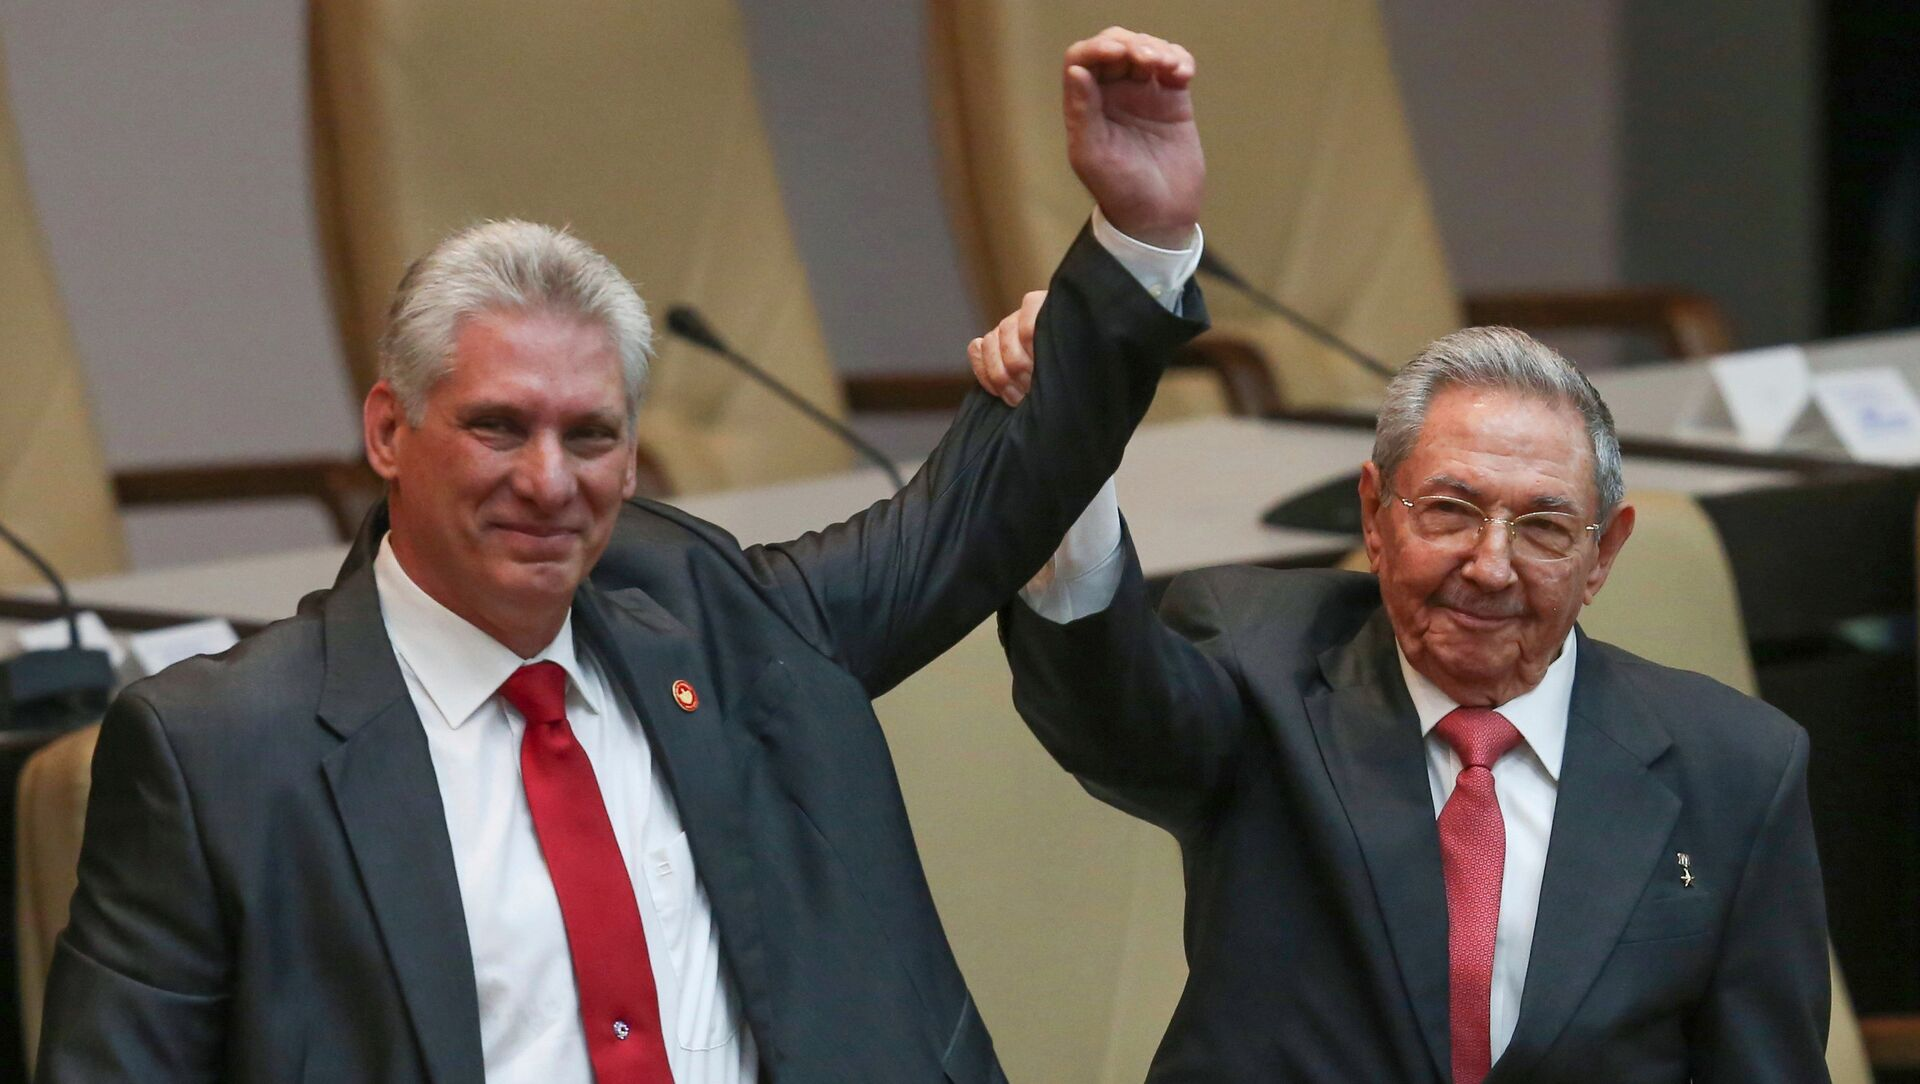 Cuba's outgoing President Raul Castro, right, and new President Miguel Diaz-Canel raise their arms in unison at the National Assembly in Havana, Cuba, Thursday, April 19, 2018. - Sputnik Italia, 1920, 19.04.2021